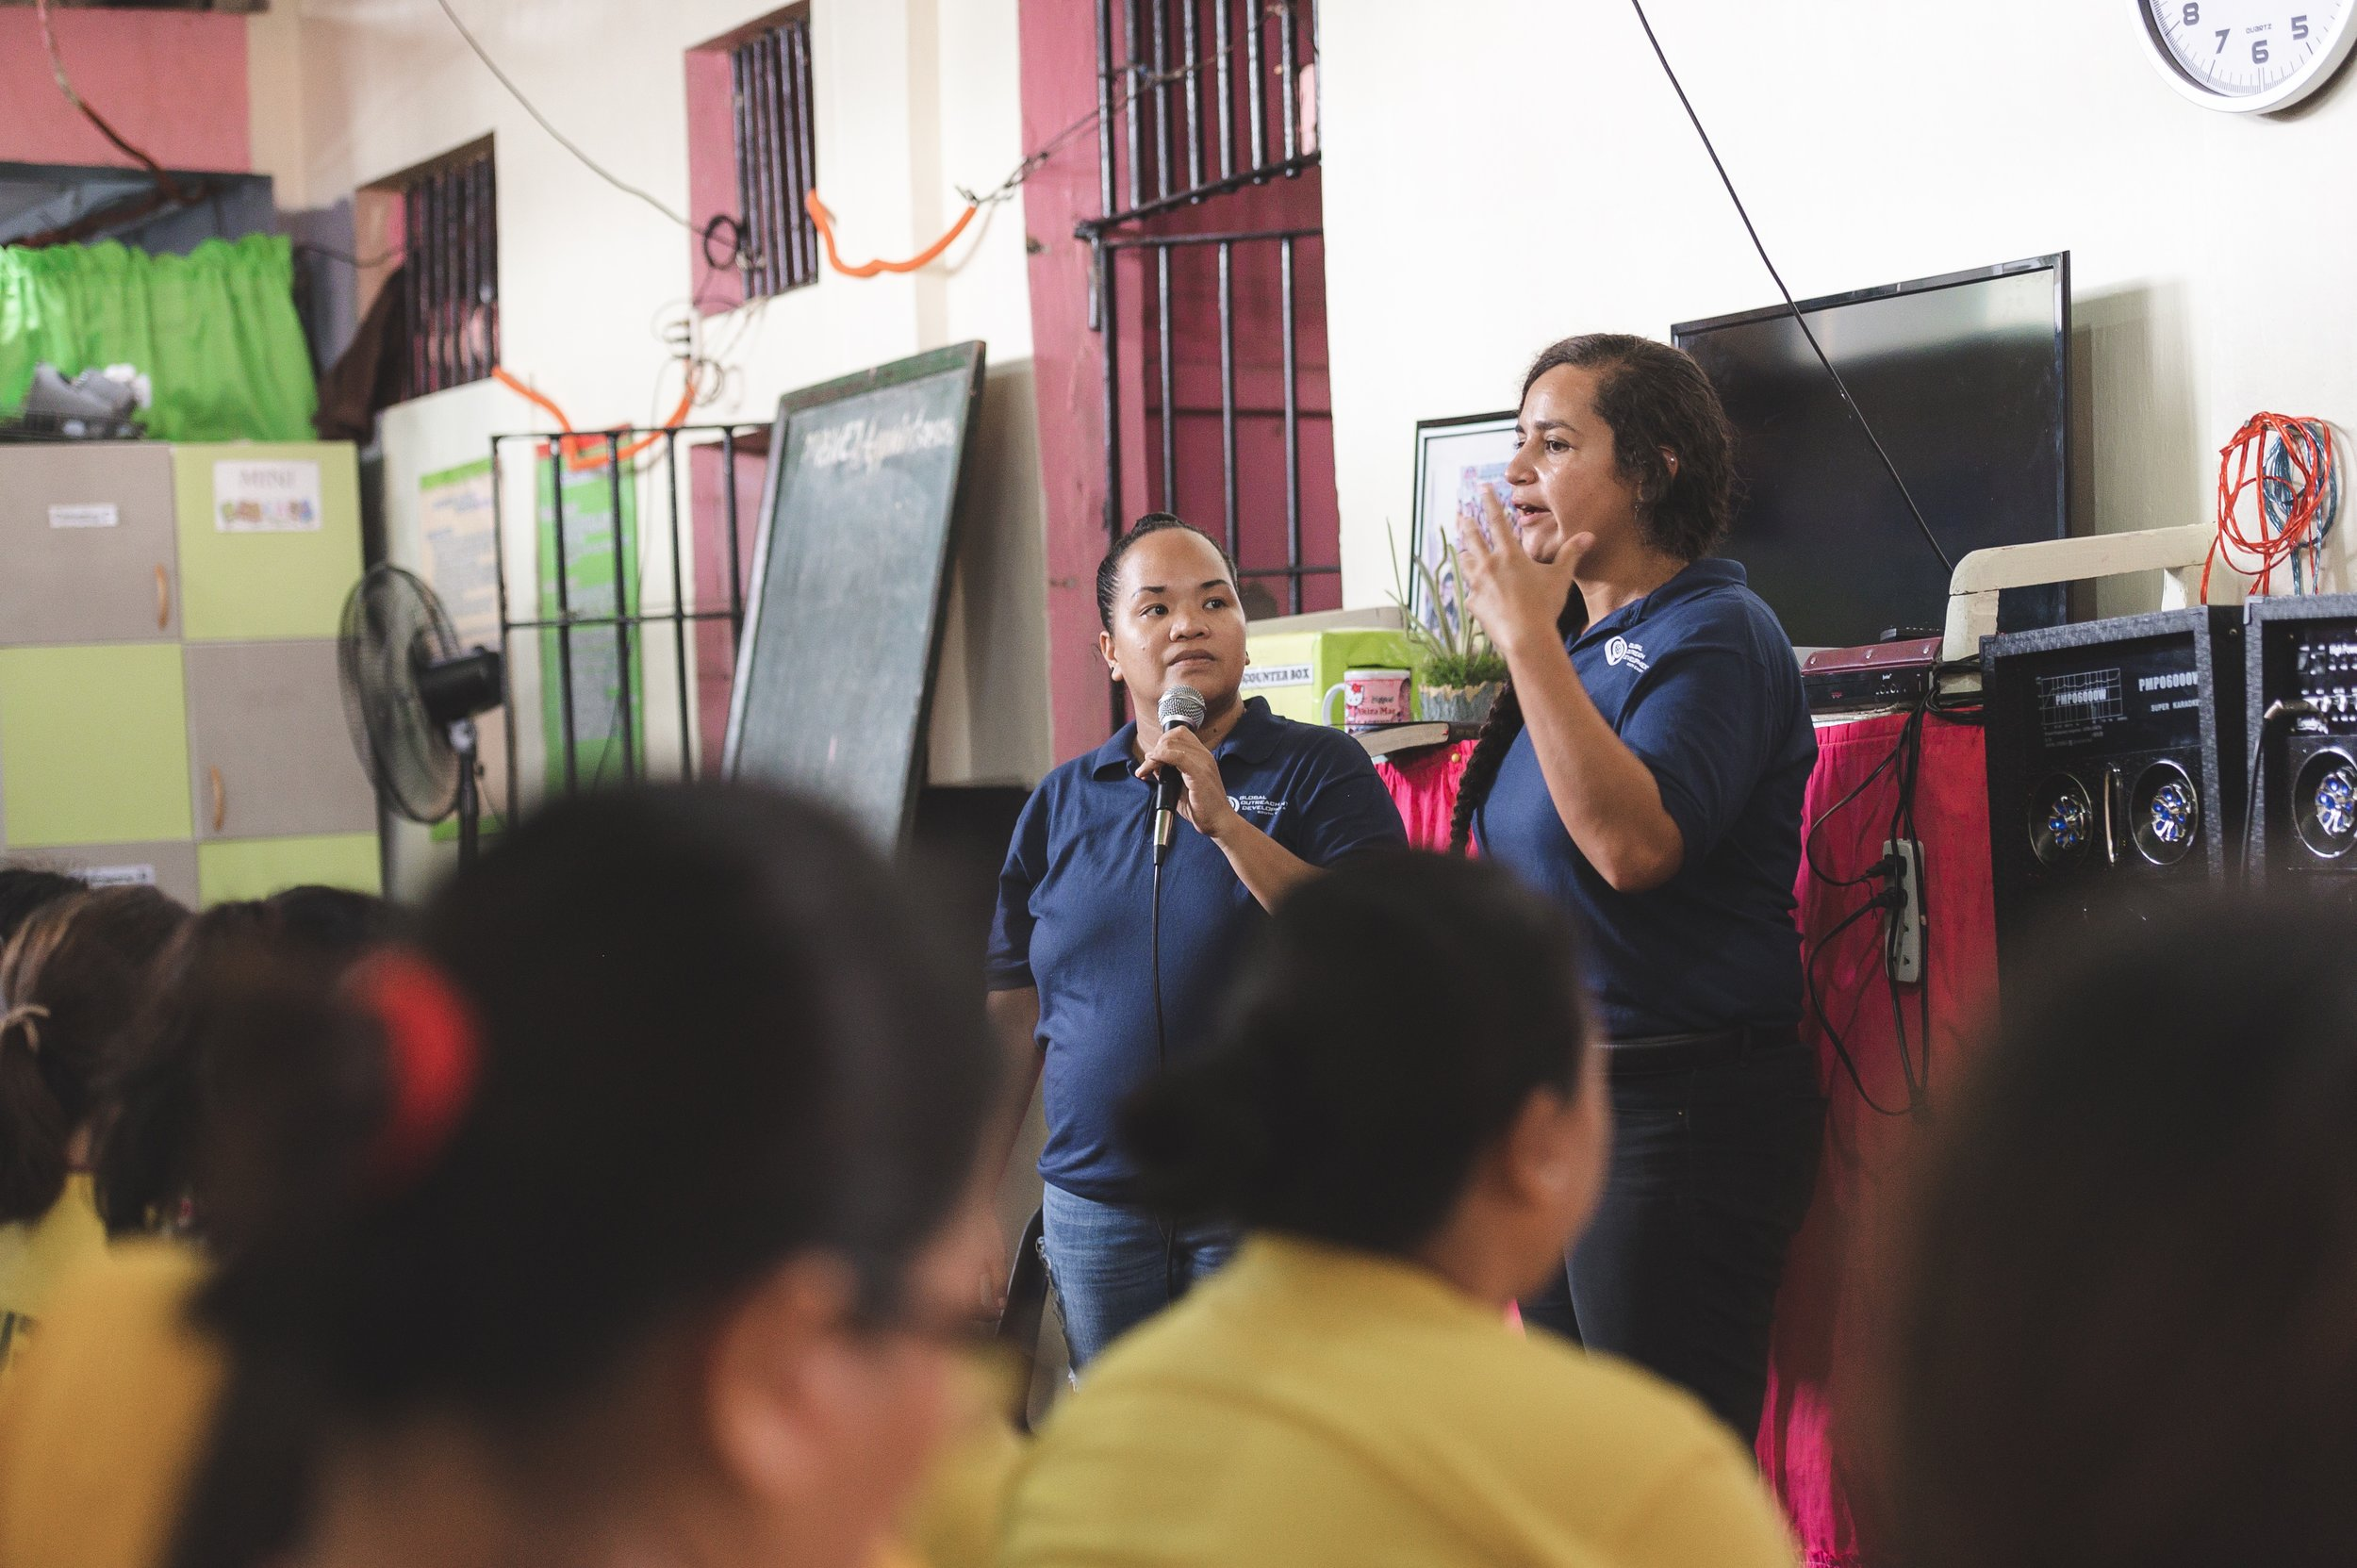 While the workshop or game may differ each week, the one thing that is constant in our weekly visits is teaching of the bible. Rina and SEA cooperatives make intentional efforts to minister to the women through worship and teaching of scripture.